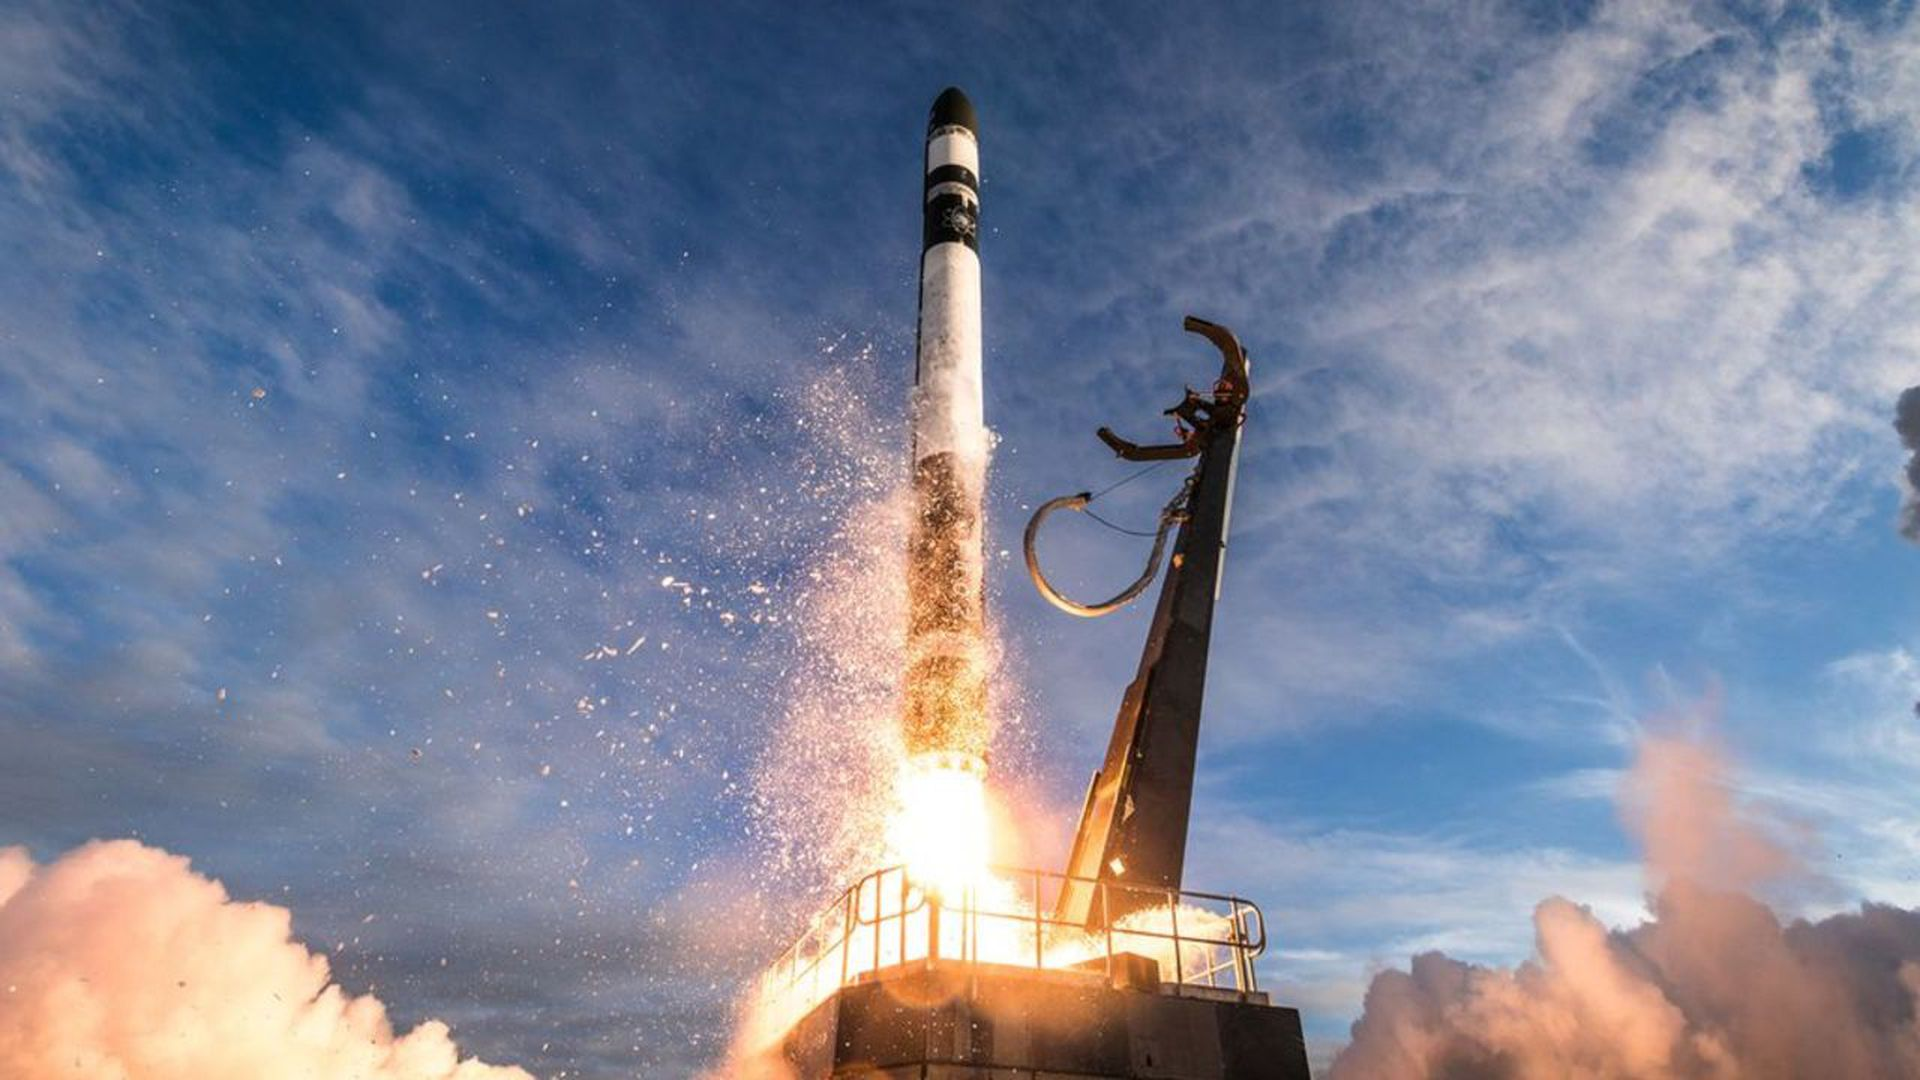 Rocket Lab's Electron rocket taking flight. Photo: Trevor Mahlmann/Rocket Lab